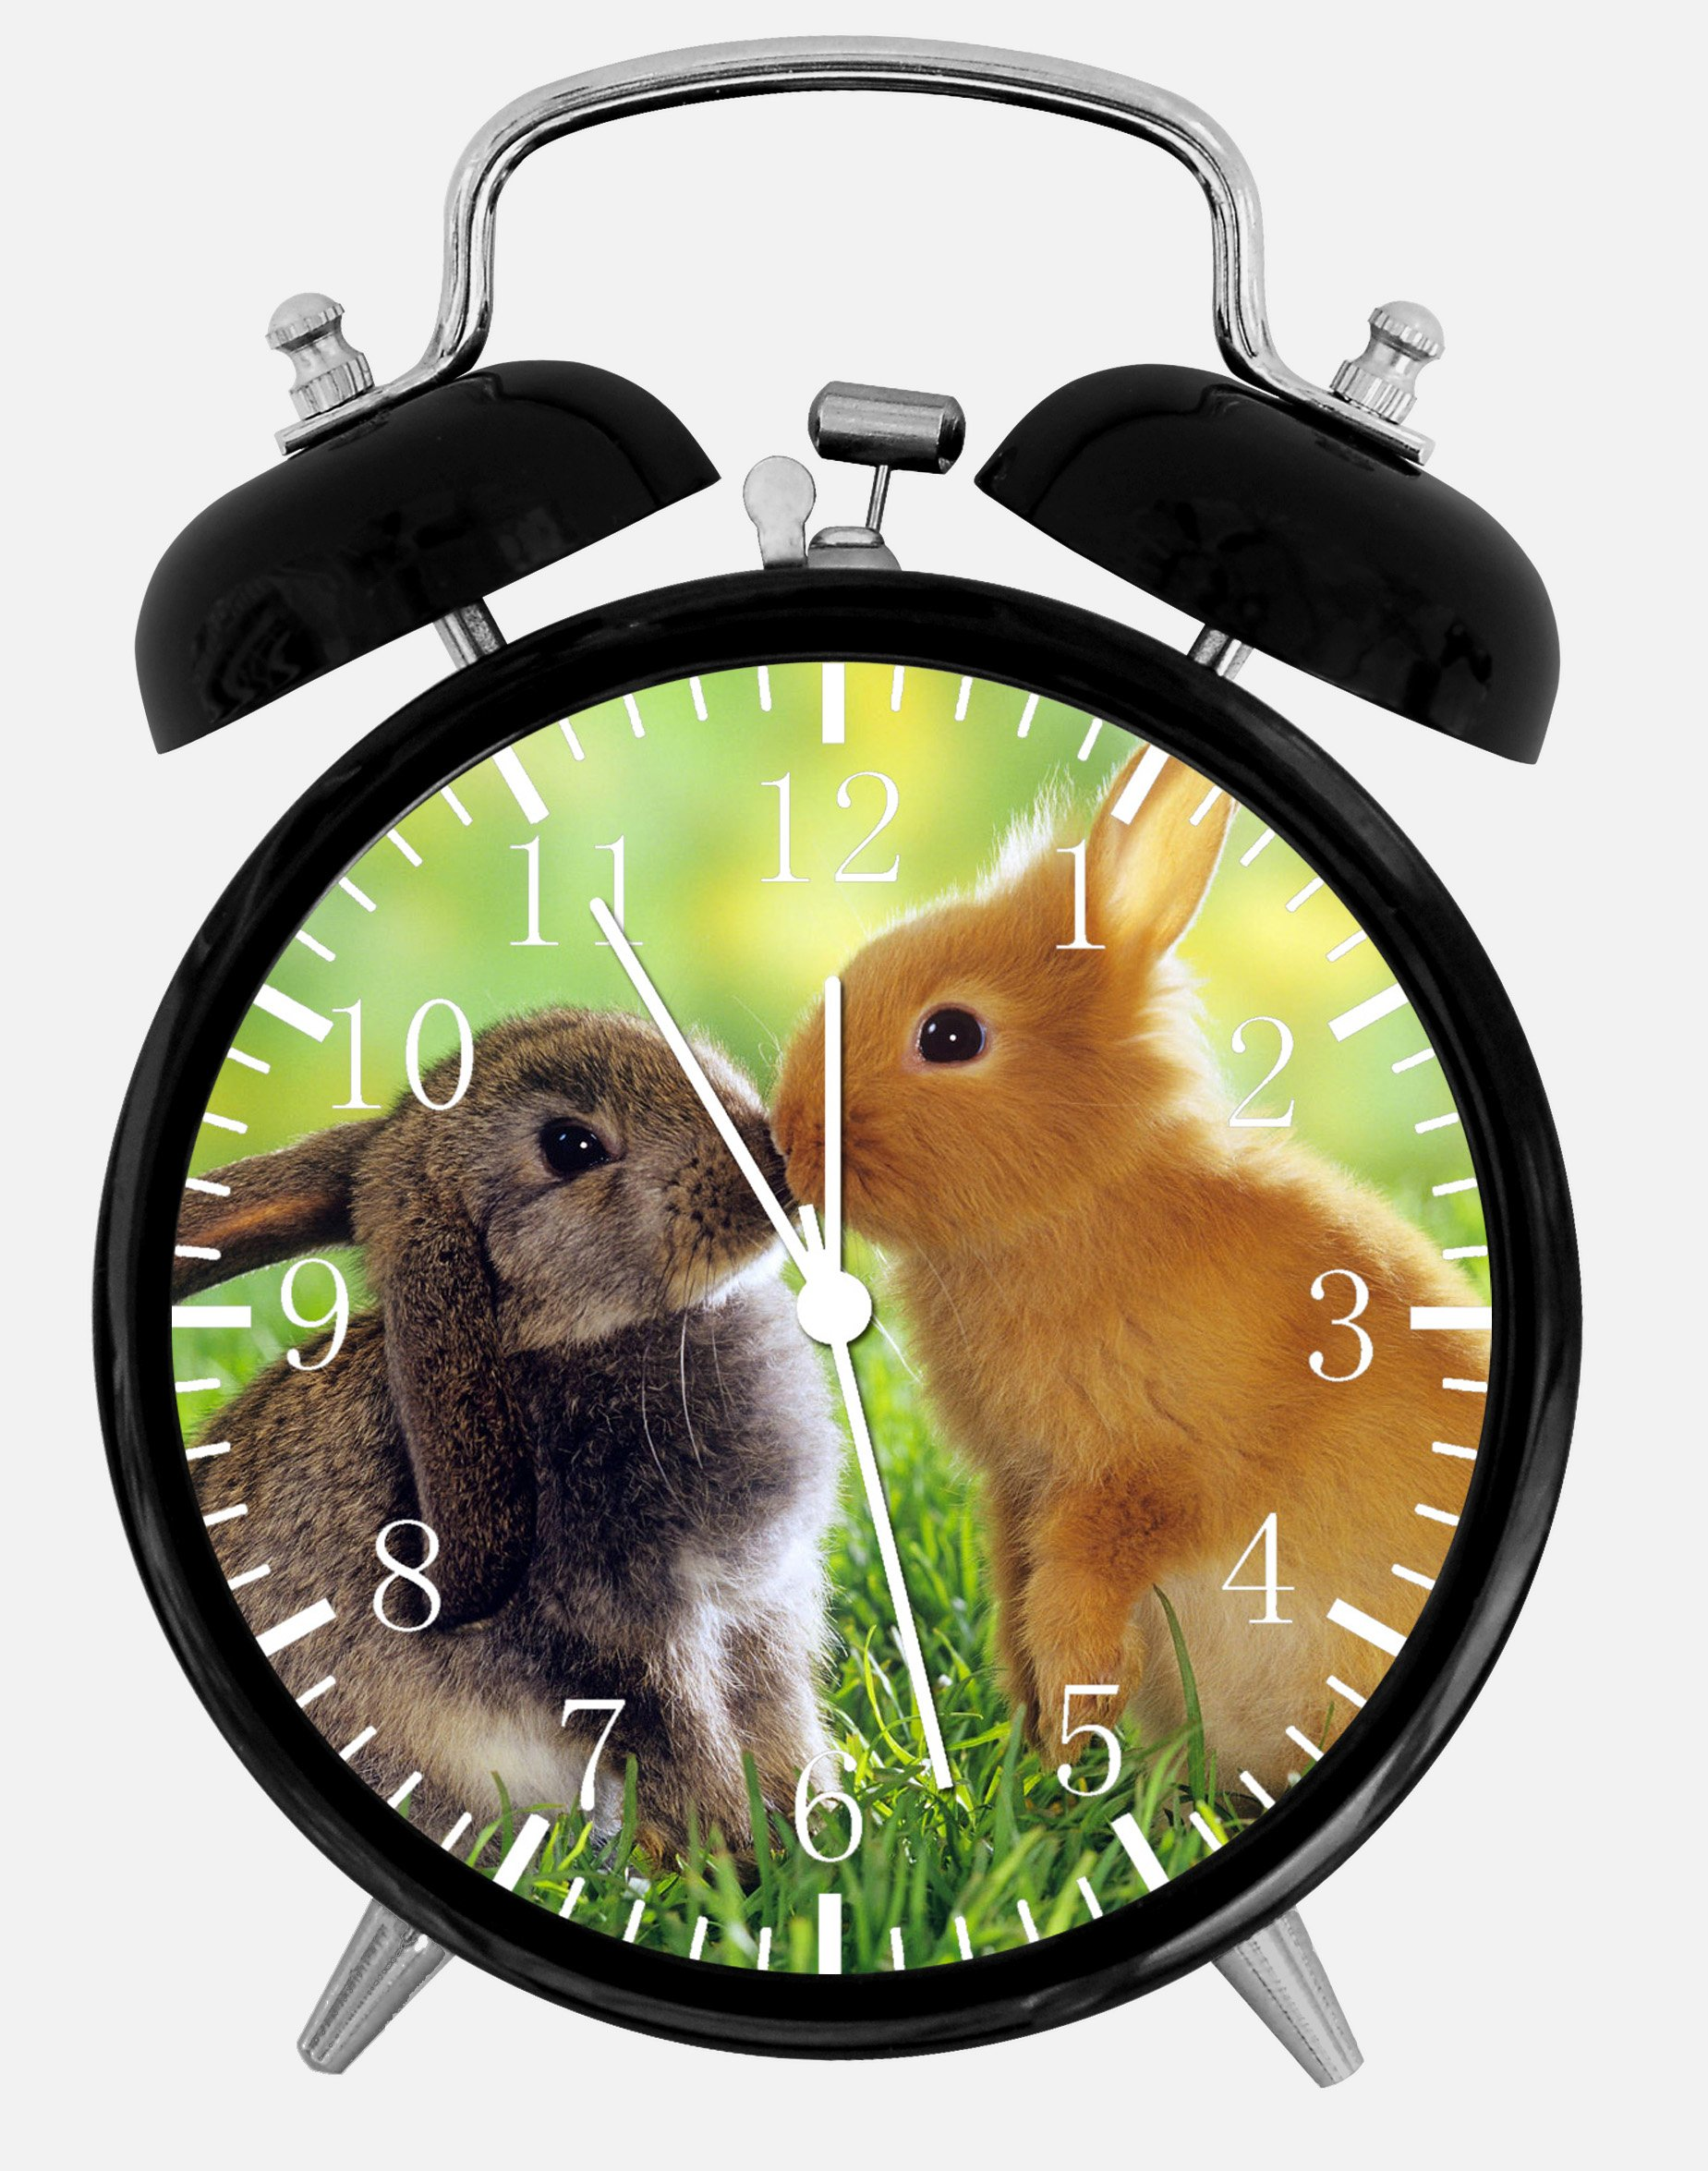 Cute Bunny Rabbits Alarm Desk Clock 3.75'' Home or Office Decor E121 Nice For Gift